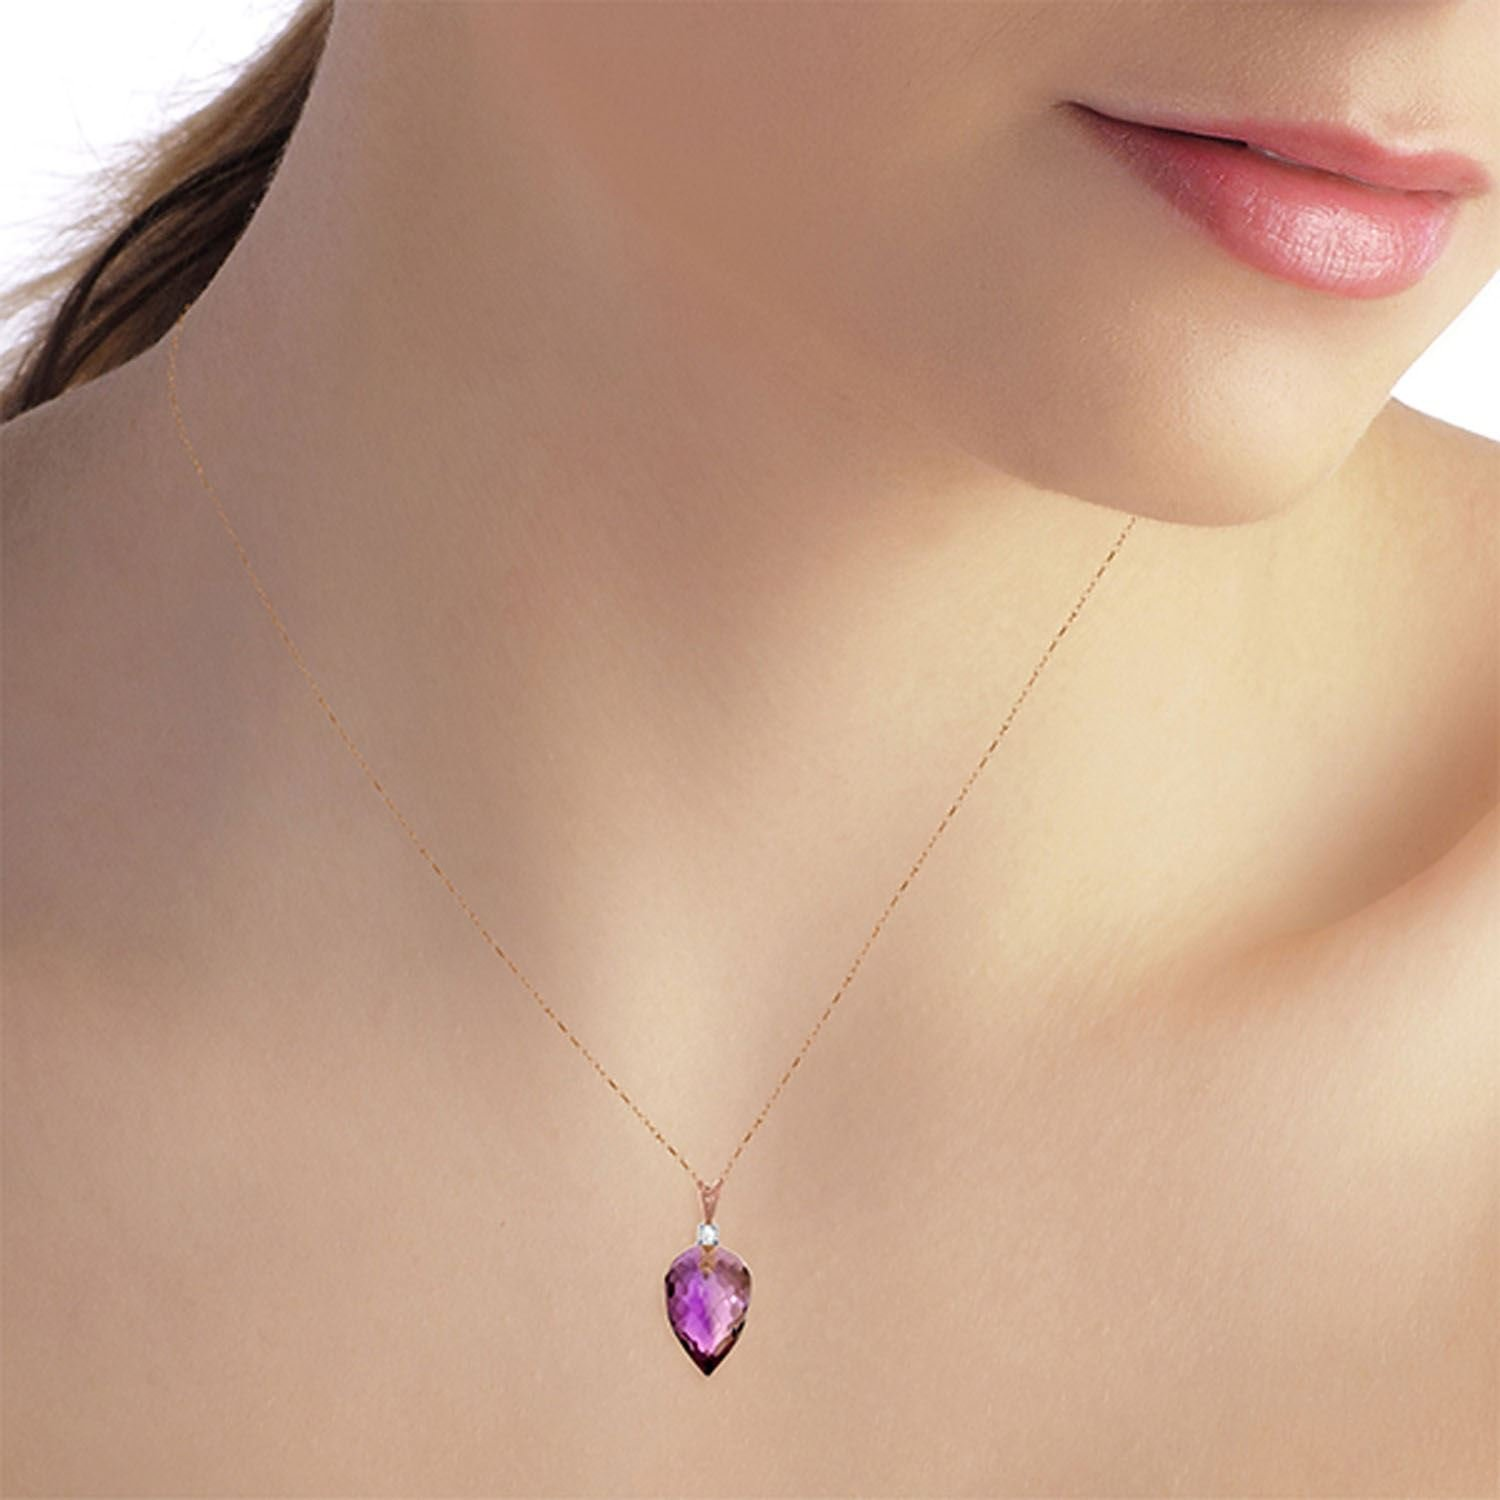 ALARRI 9.55 Carat 14K Solid Rose Gold Necklace Diamond Briolette Drop Amethyst with 18 Inch Chain Length